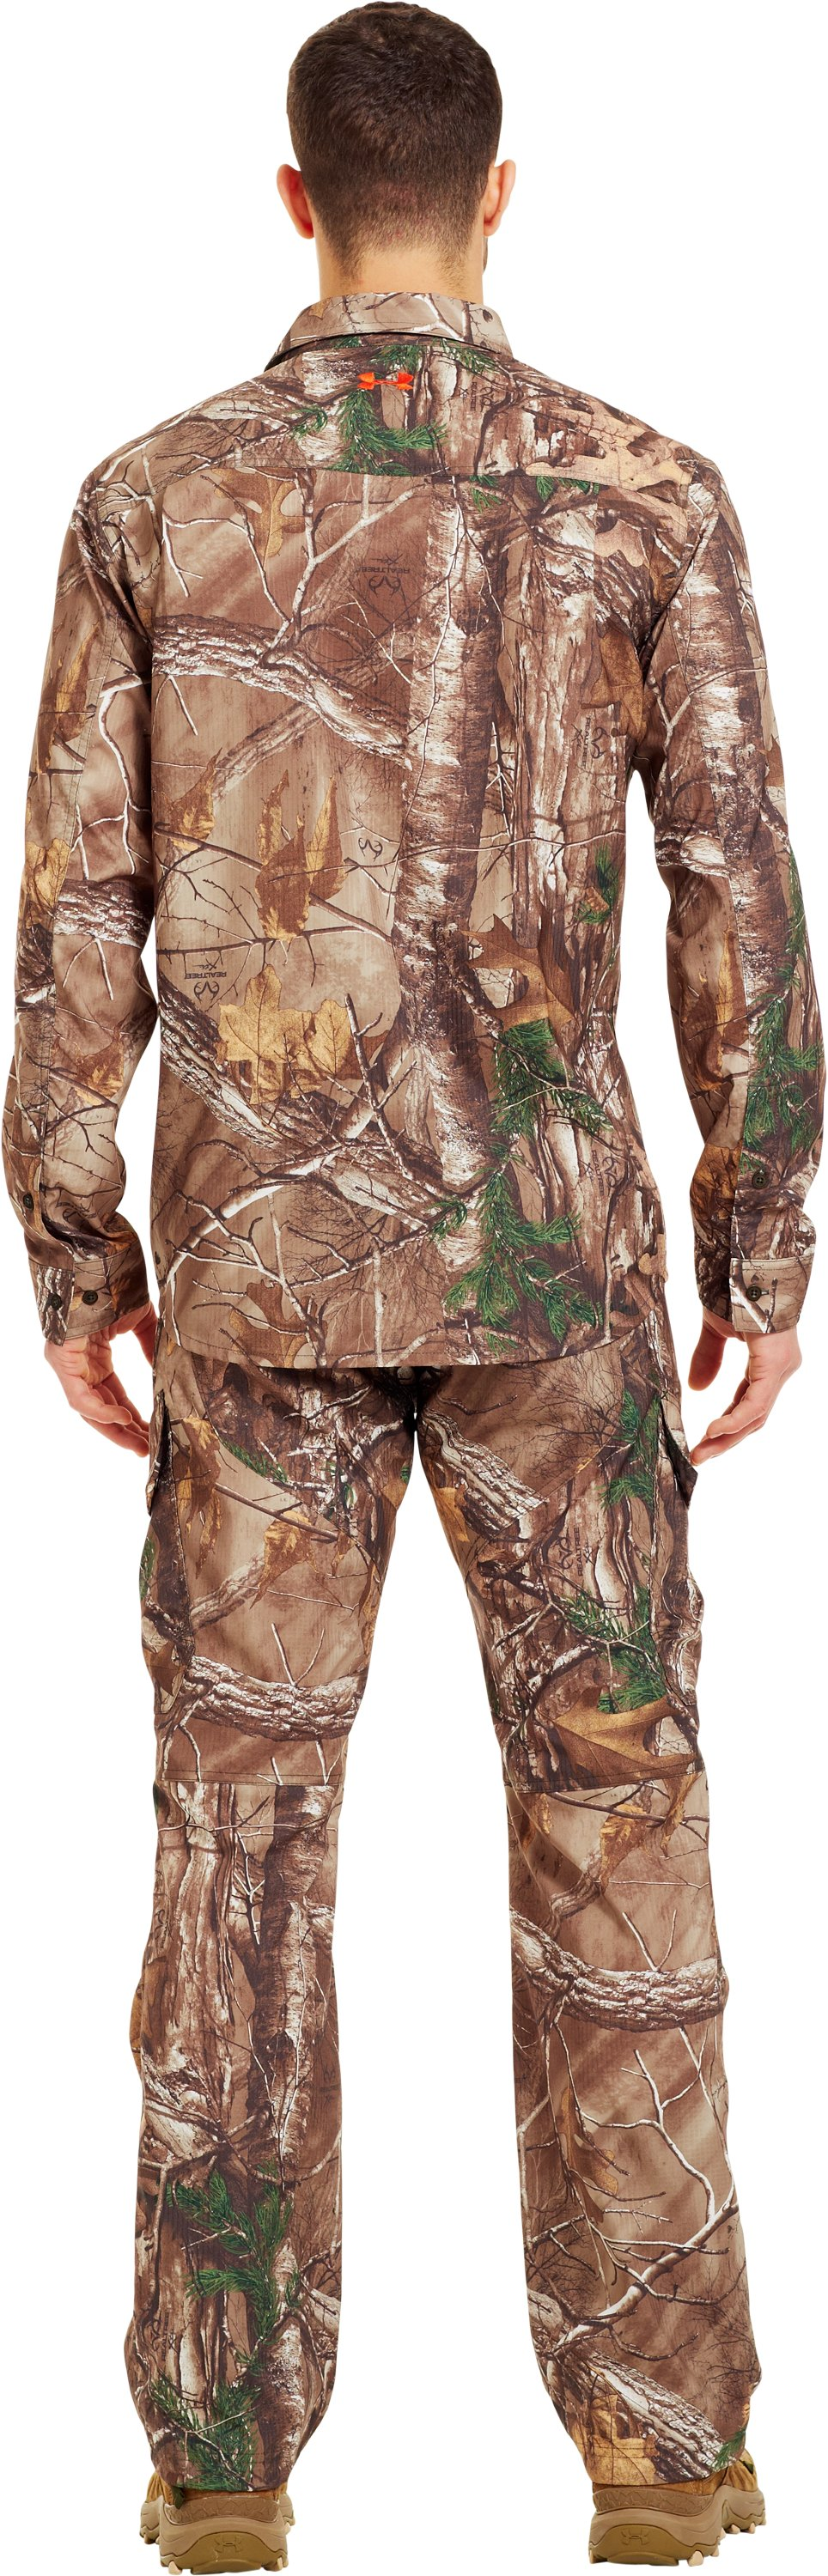 Men's UA Performance Field Shirt, REALTREE AP-XTRA, Back